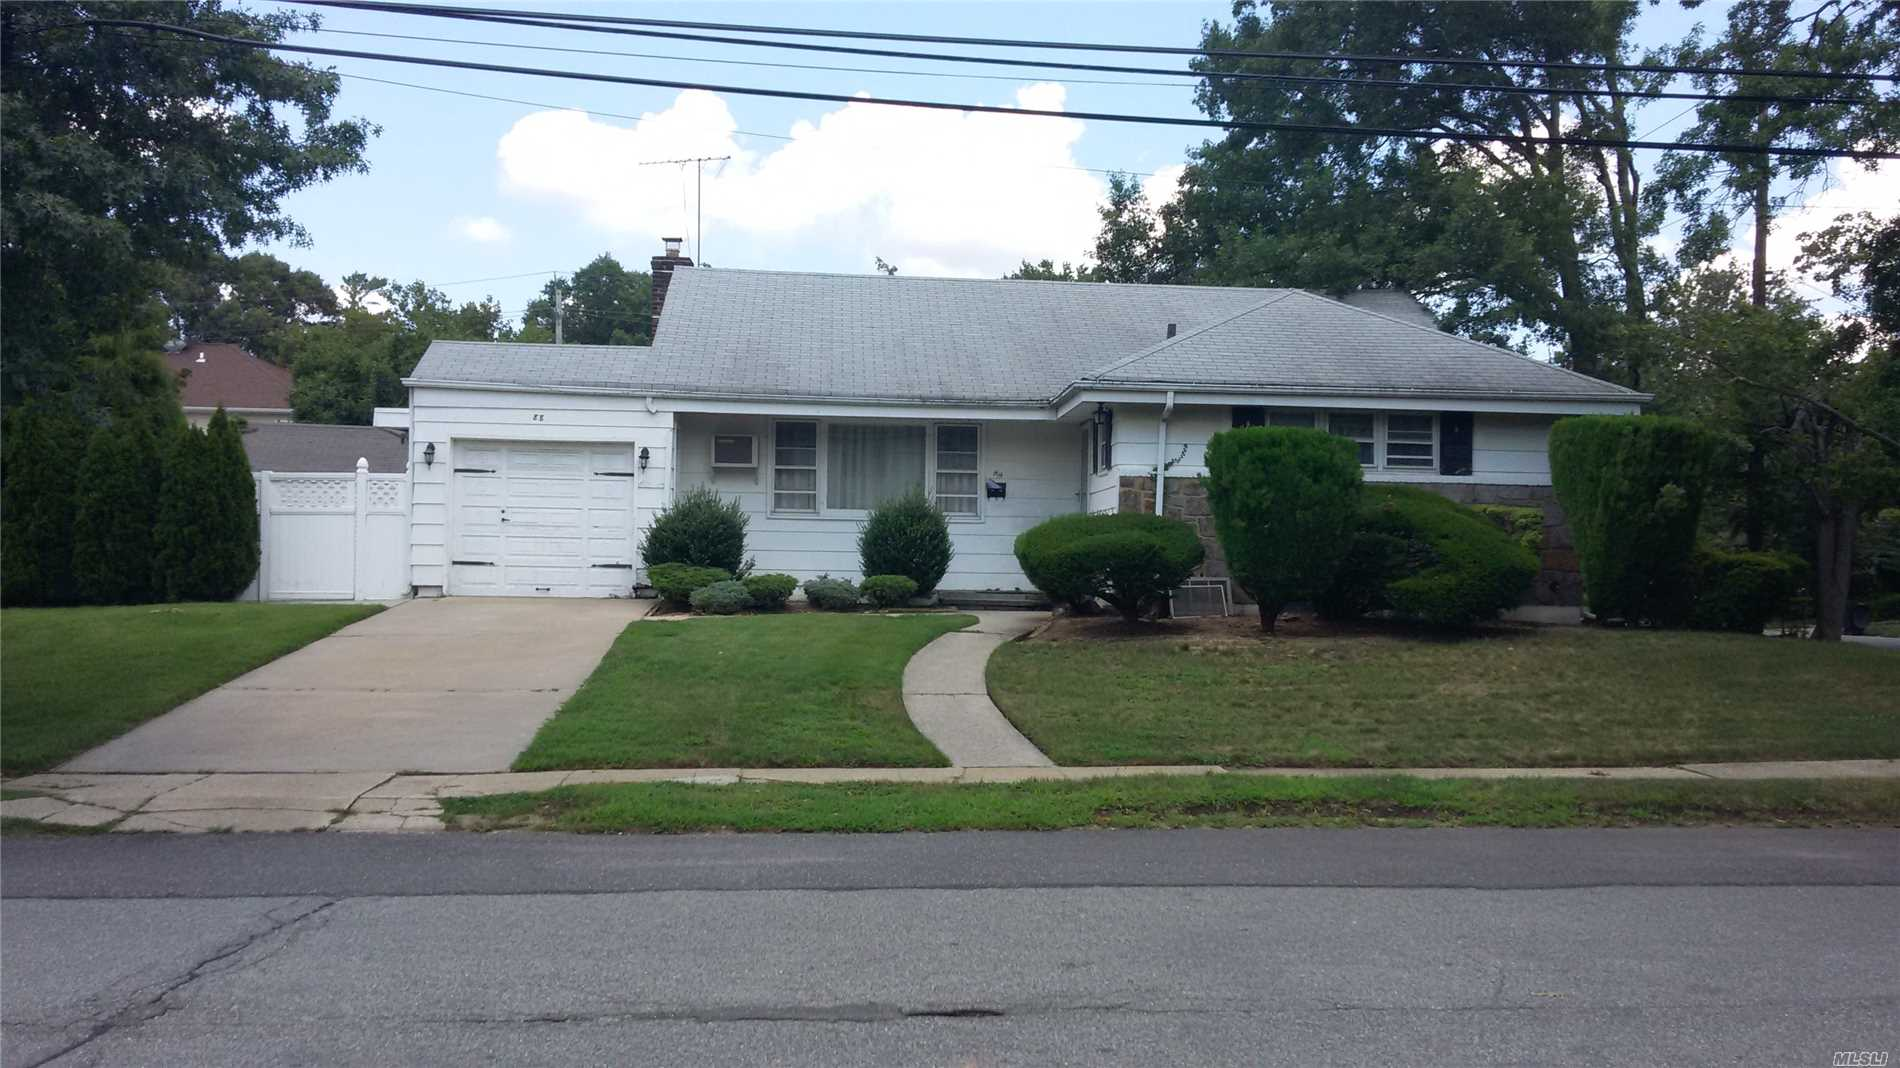 Photo of home for sale at 88 Wolf Ave, Malverne NY